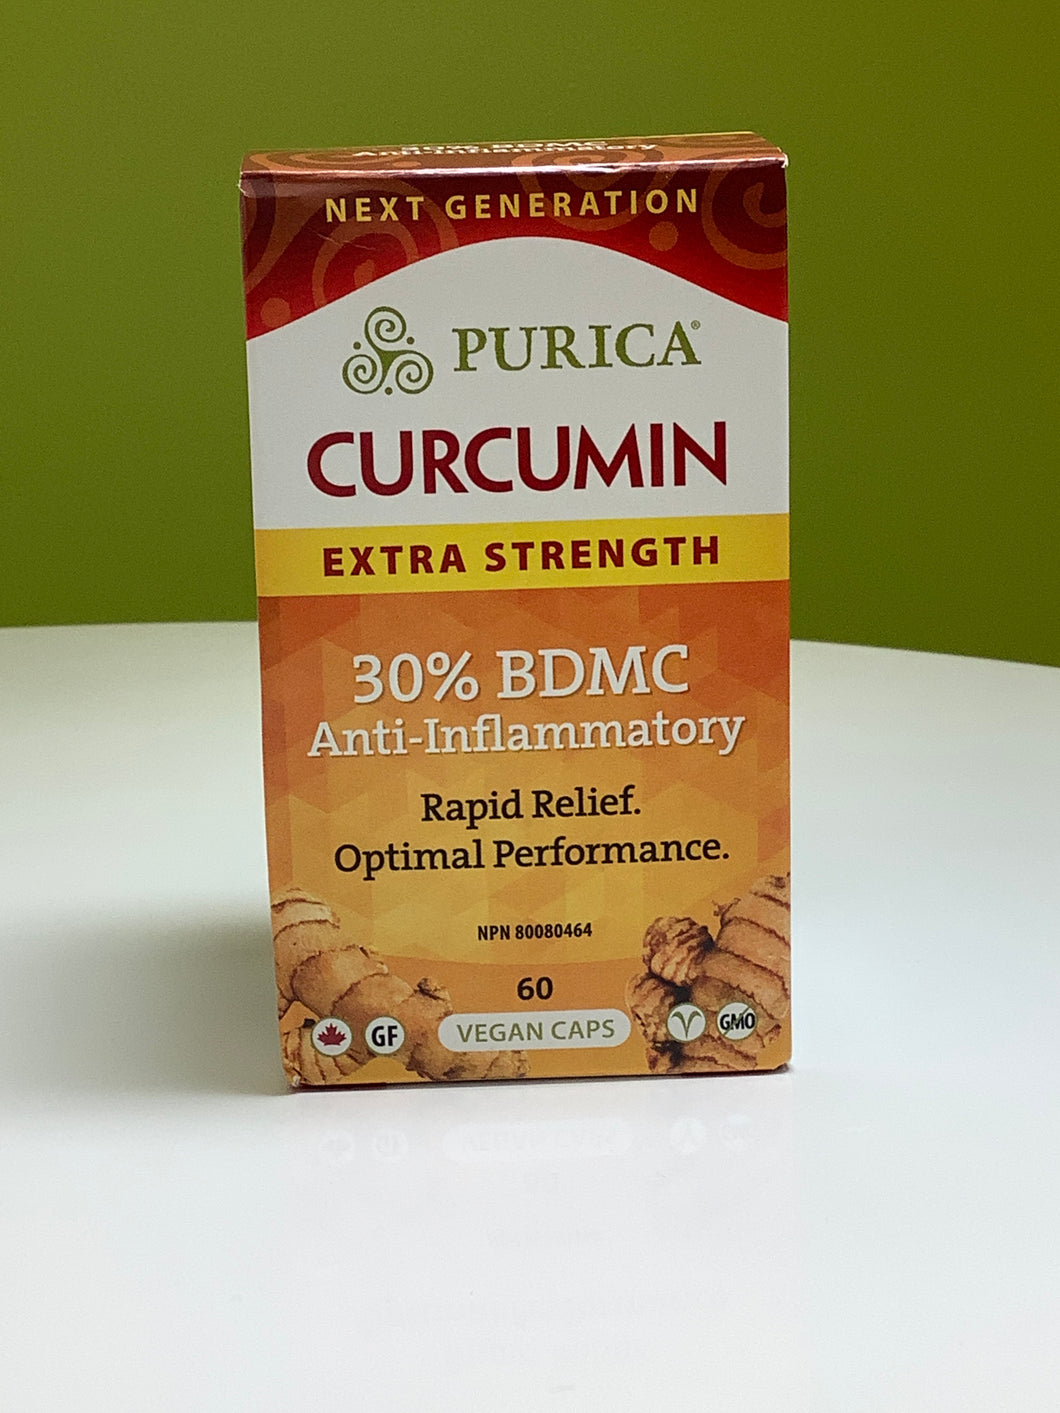 Purica Curcumin Extra Strength